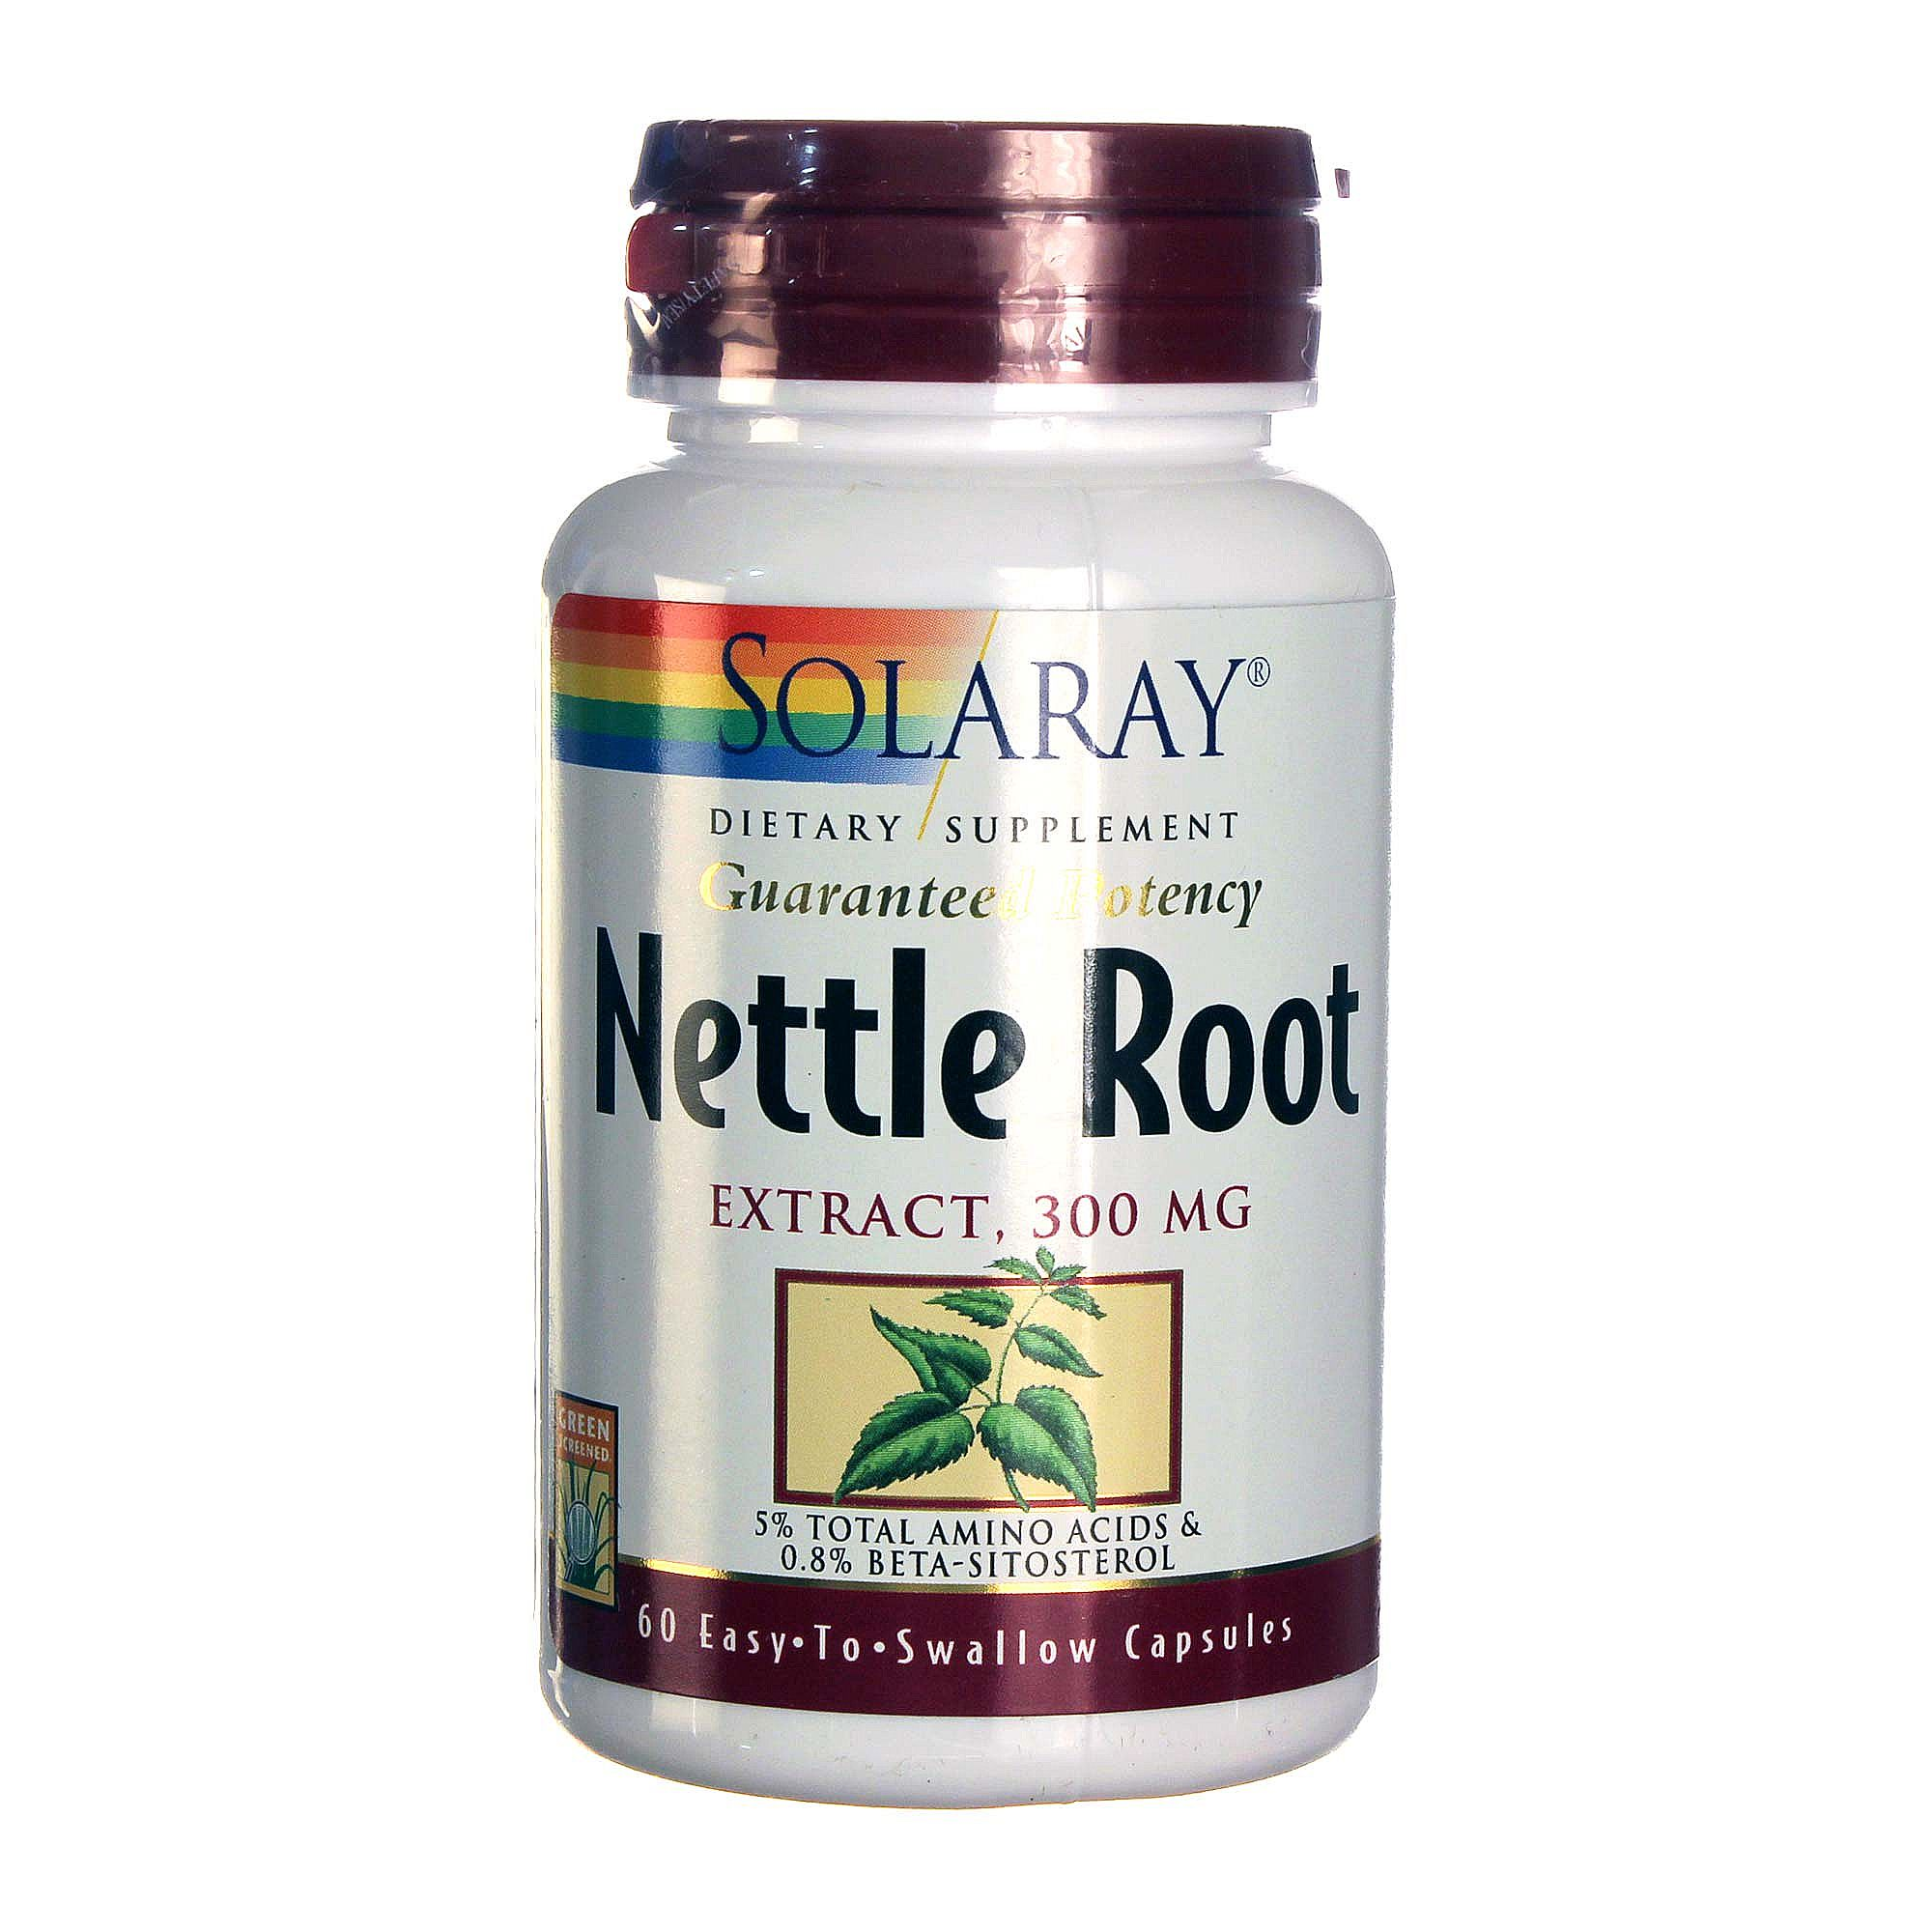 Nettle root extract dosage